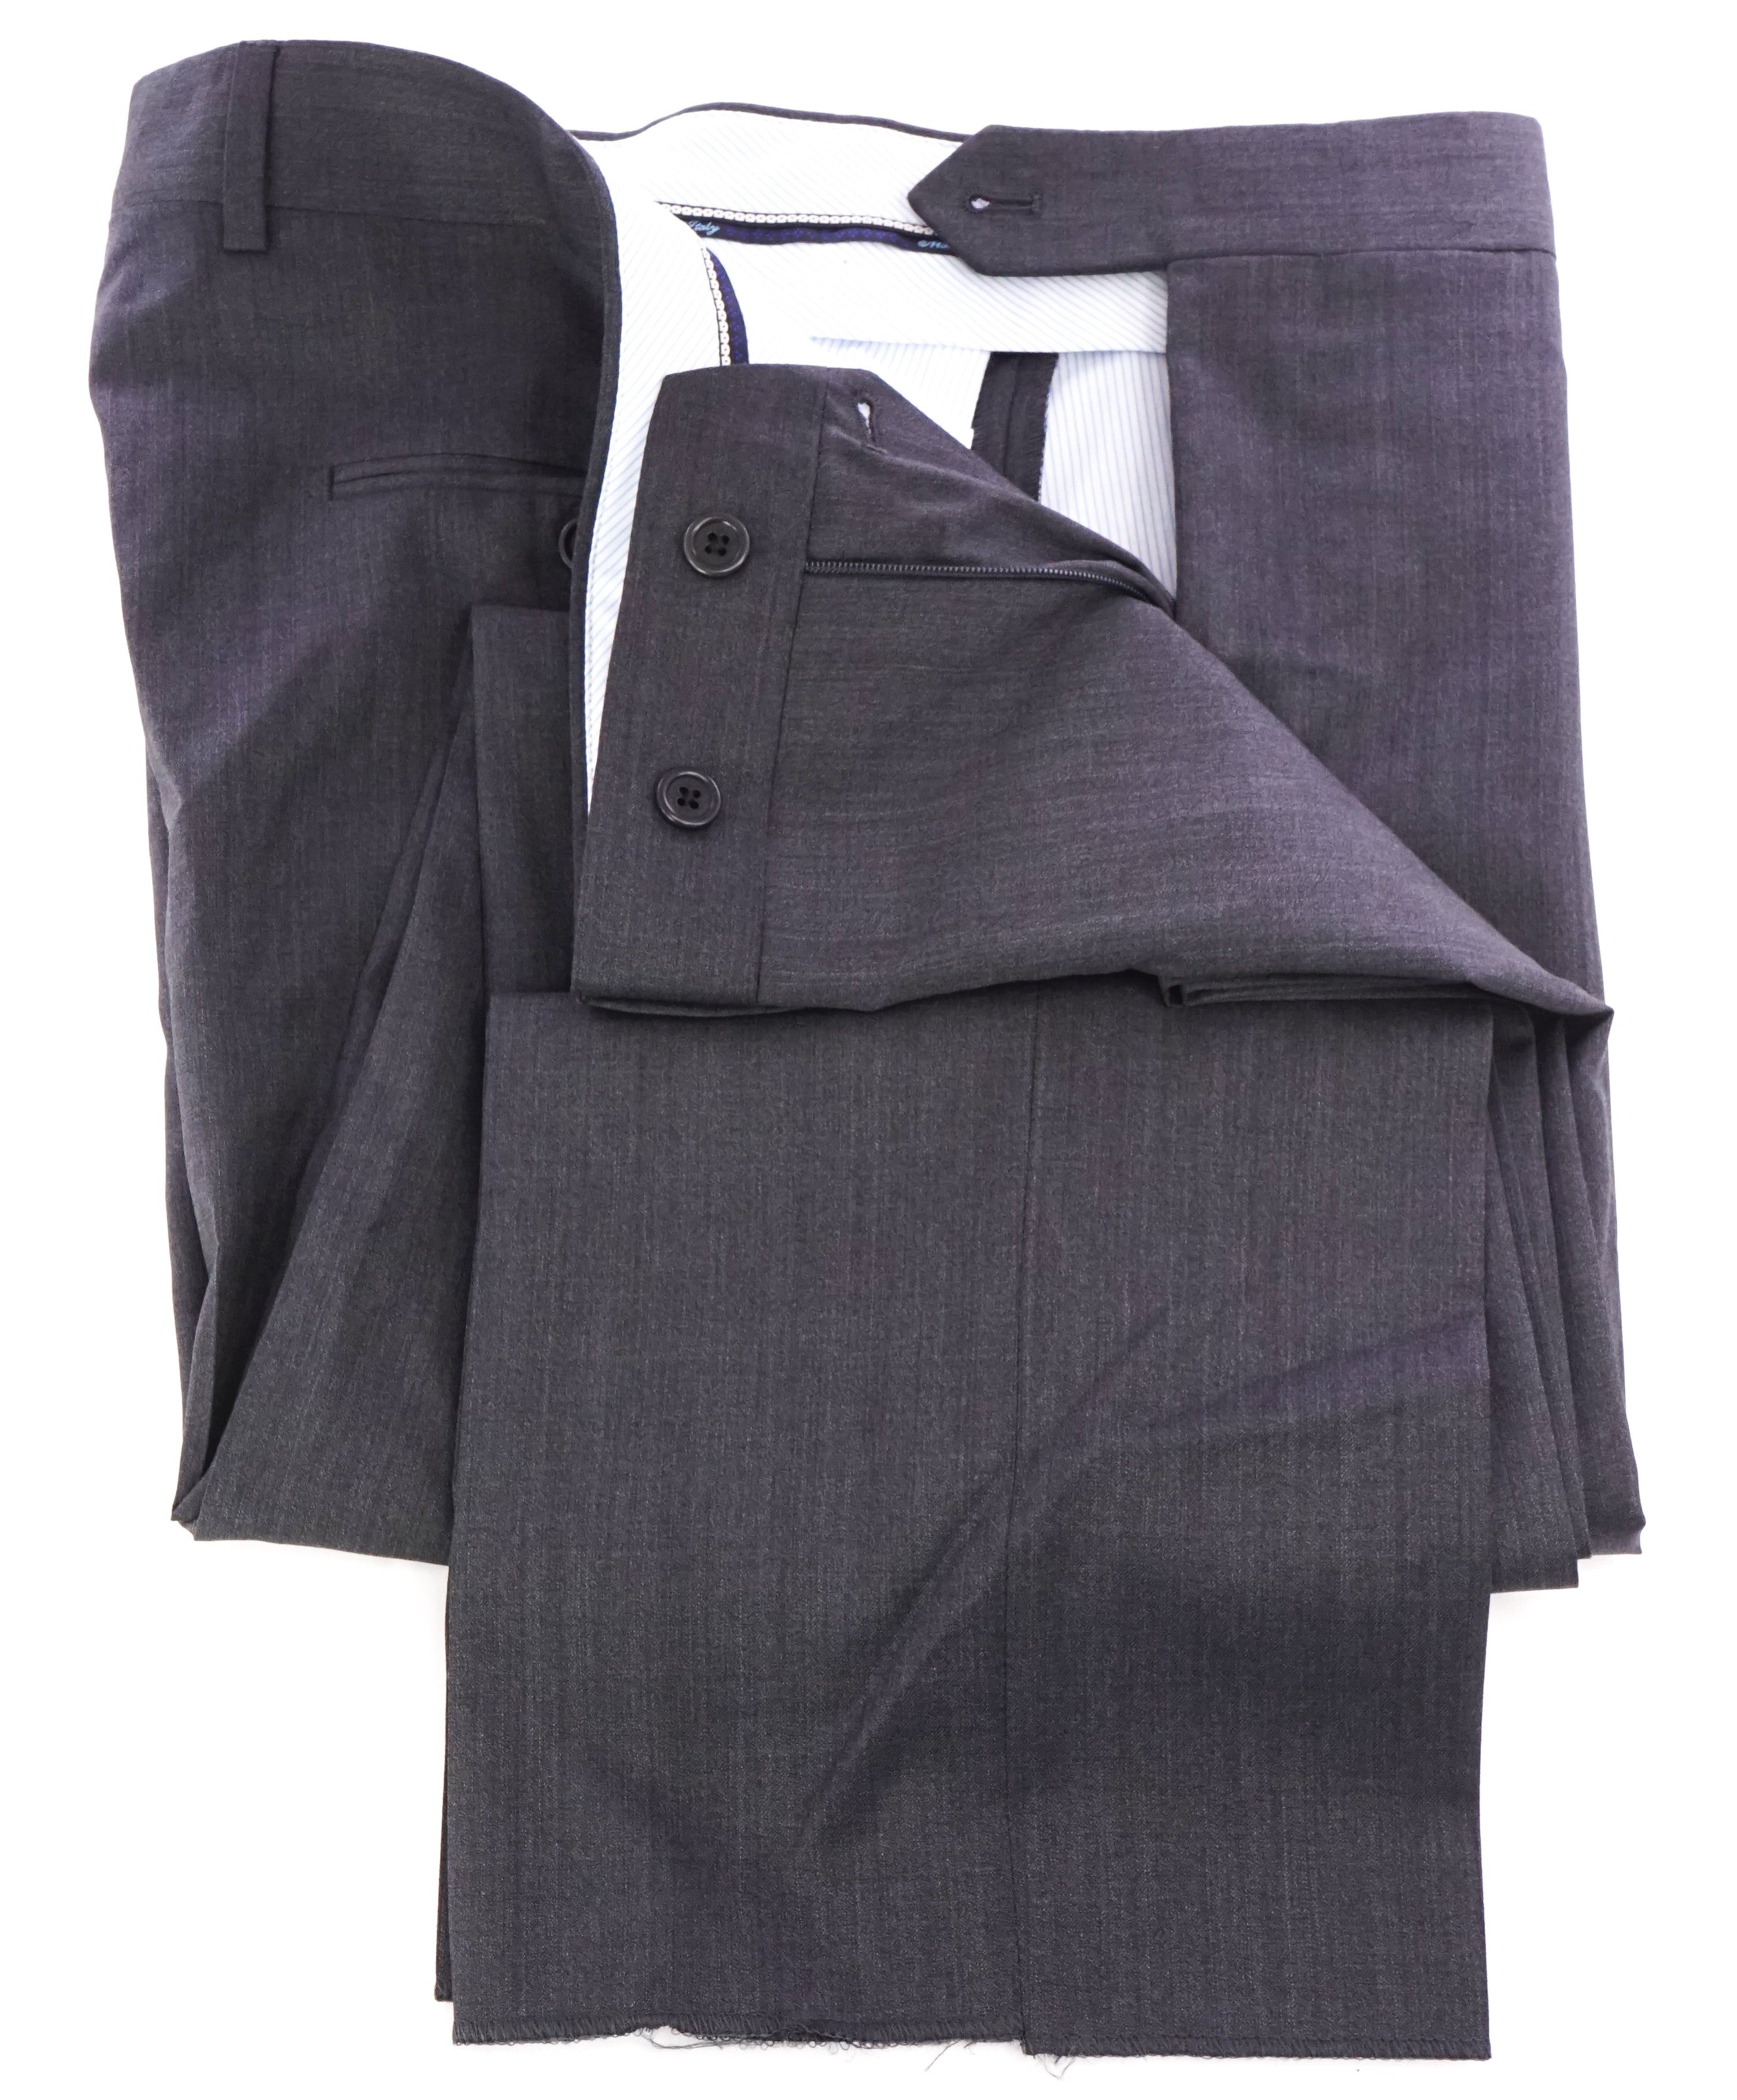 SAKS FIFTH AVE -Charcoal Wool & Silk MADE IN ITALY Flat Front Dress Pants -  42W